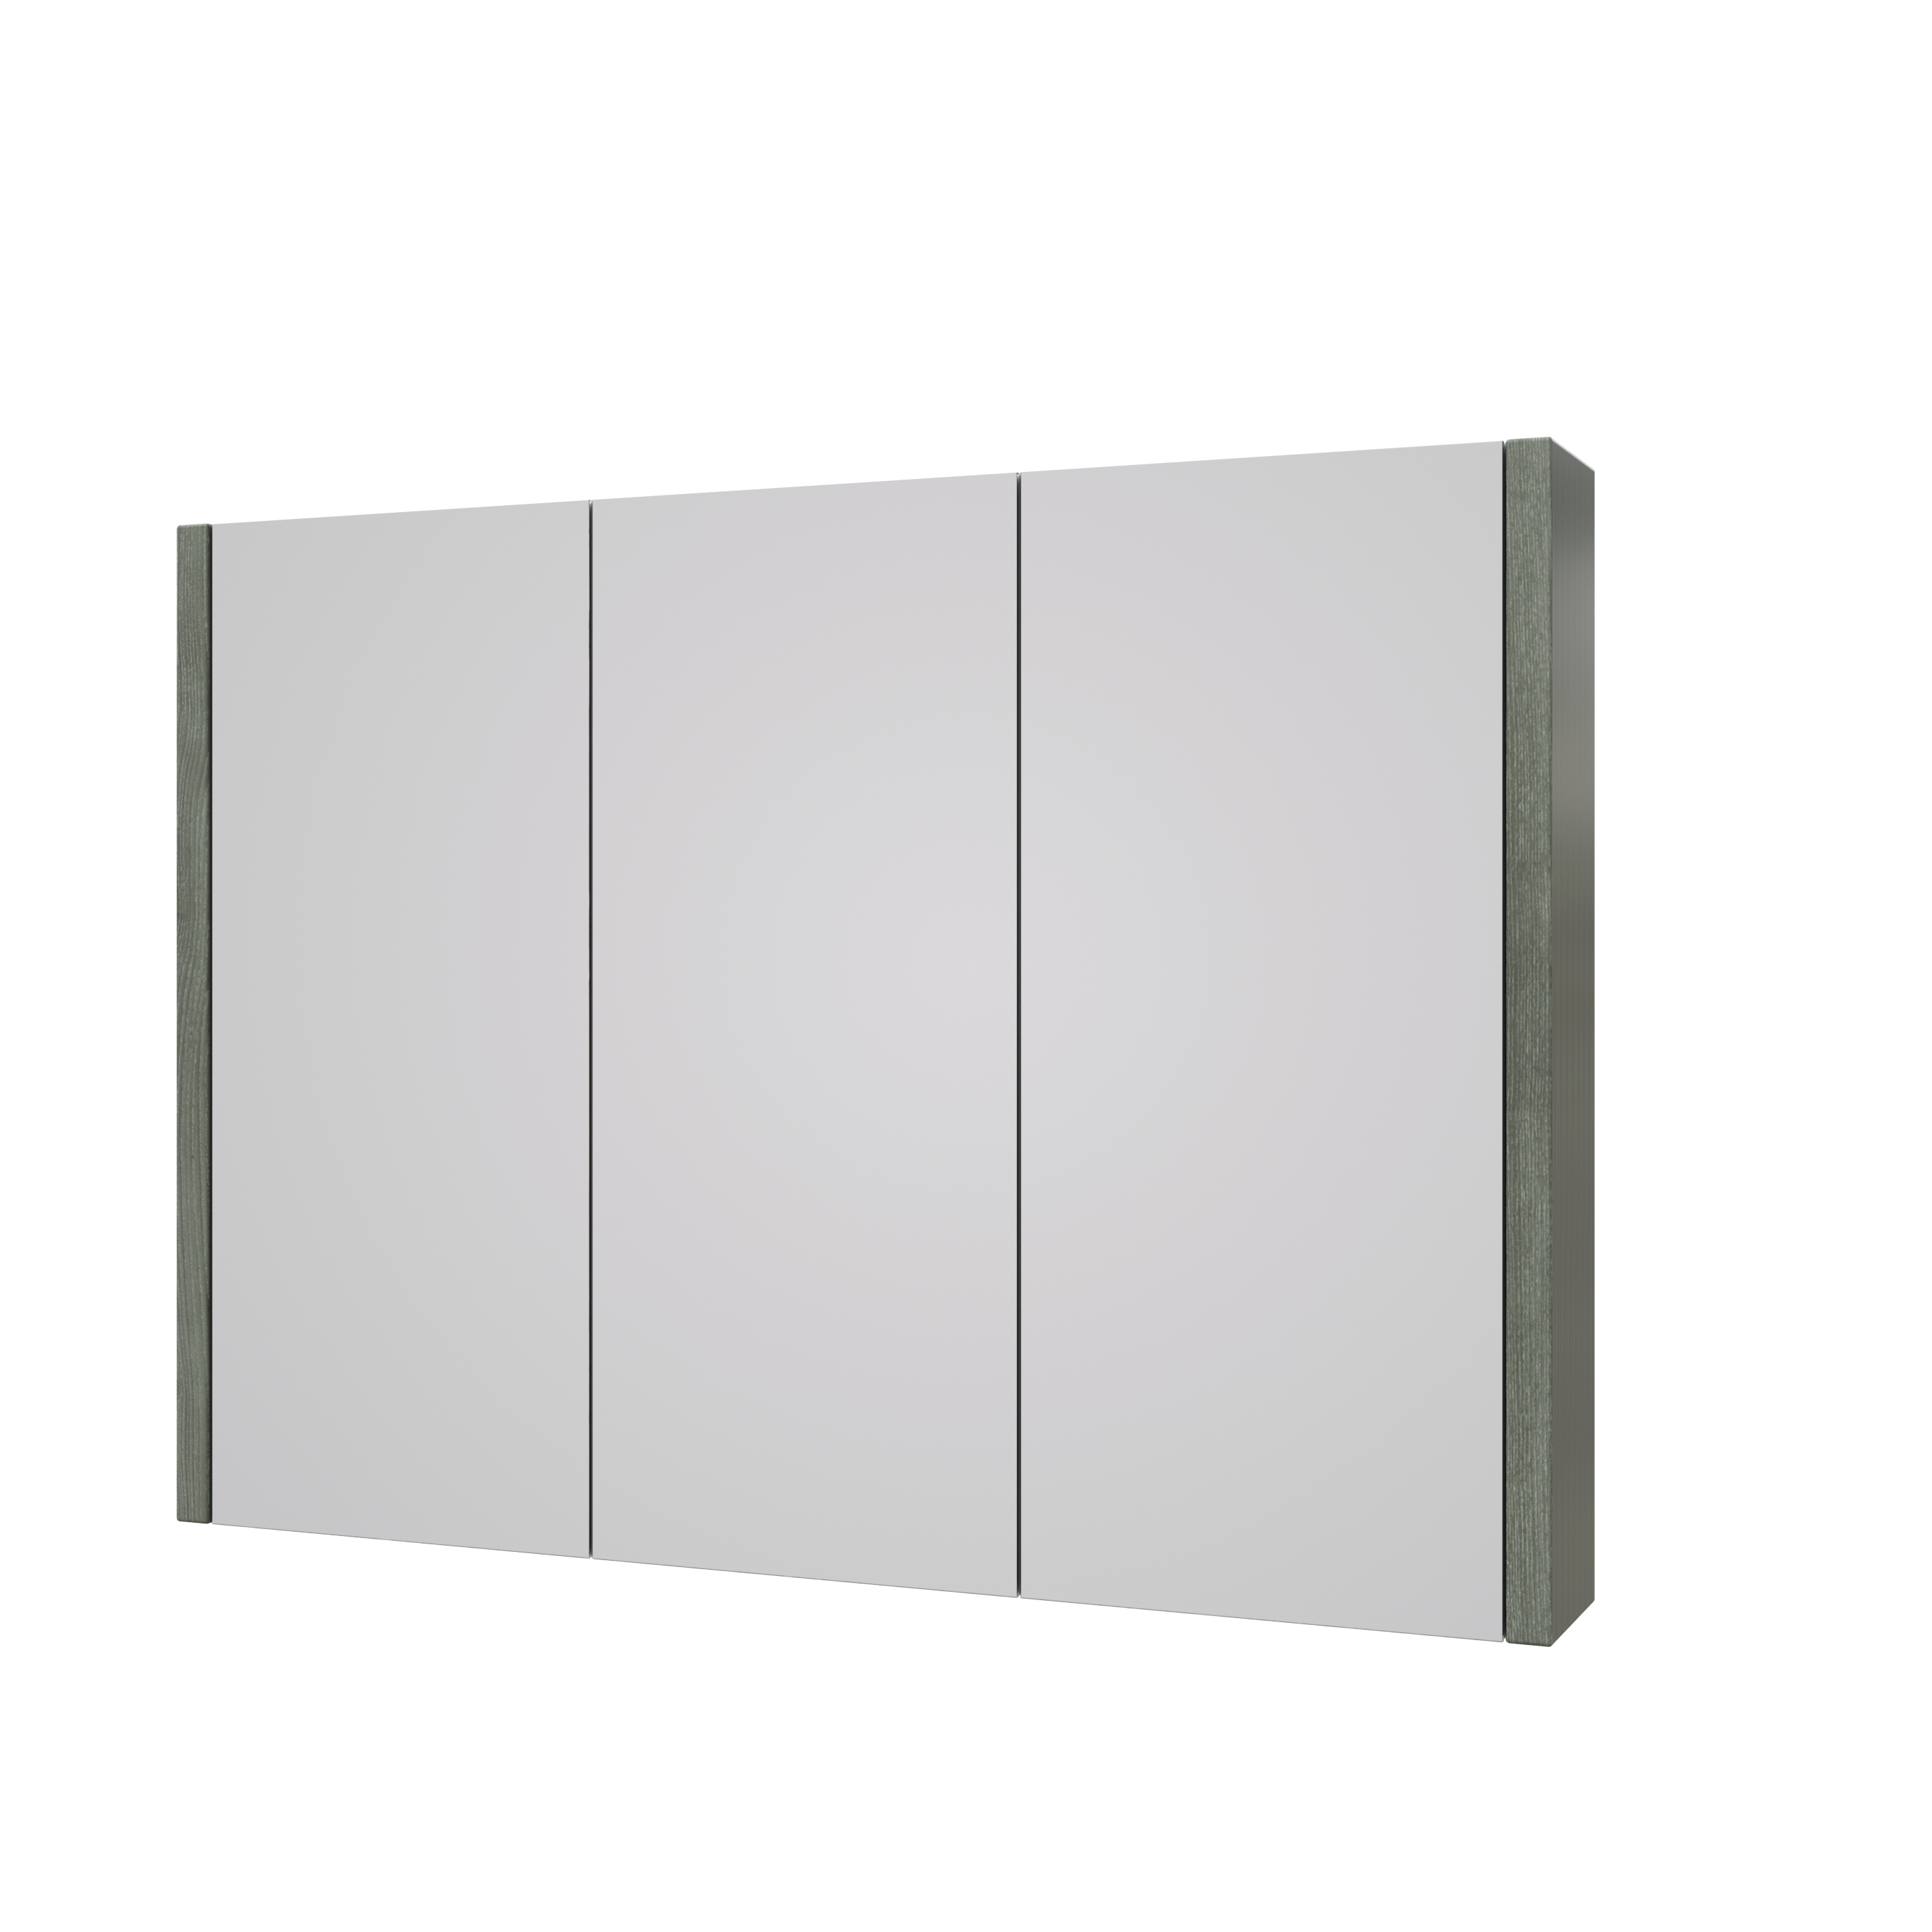 Purity 900mm Mirror Cabinet Grey Ash